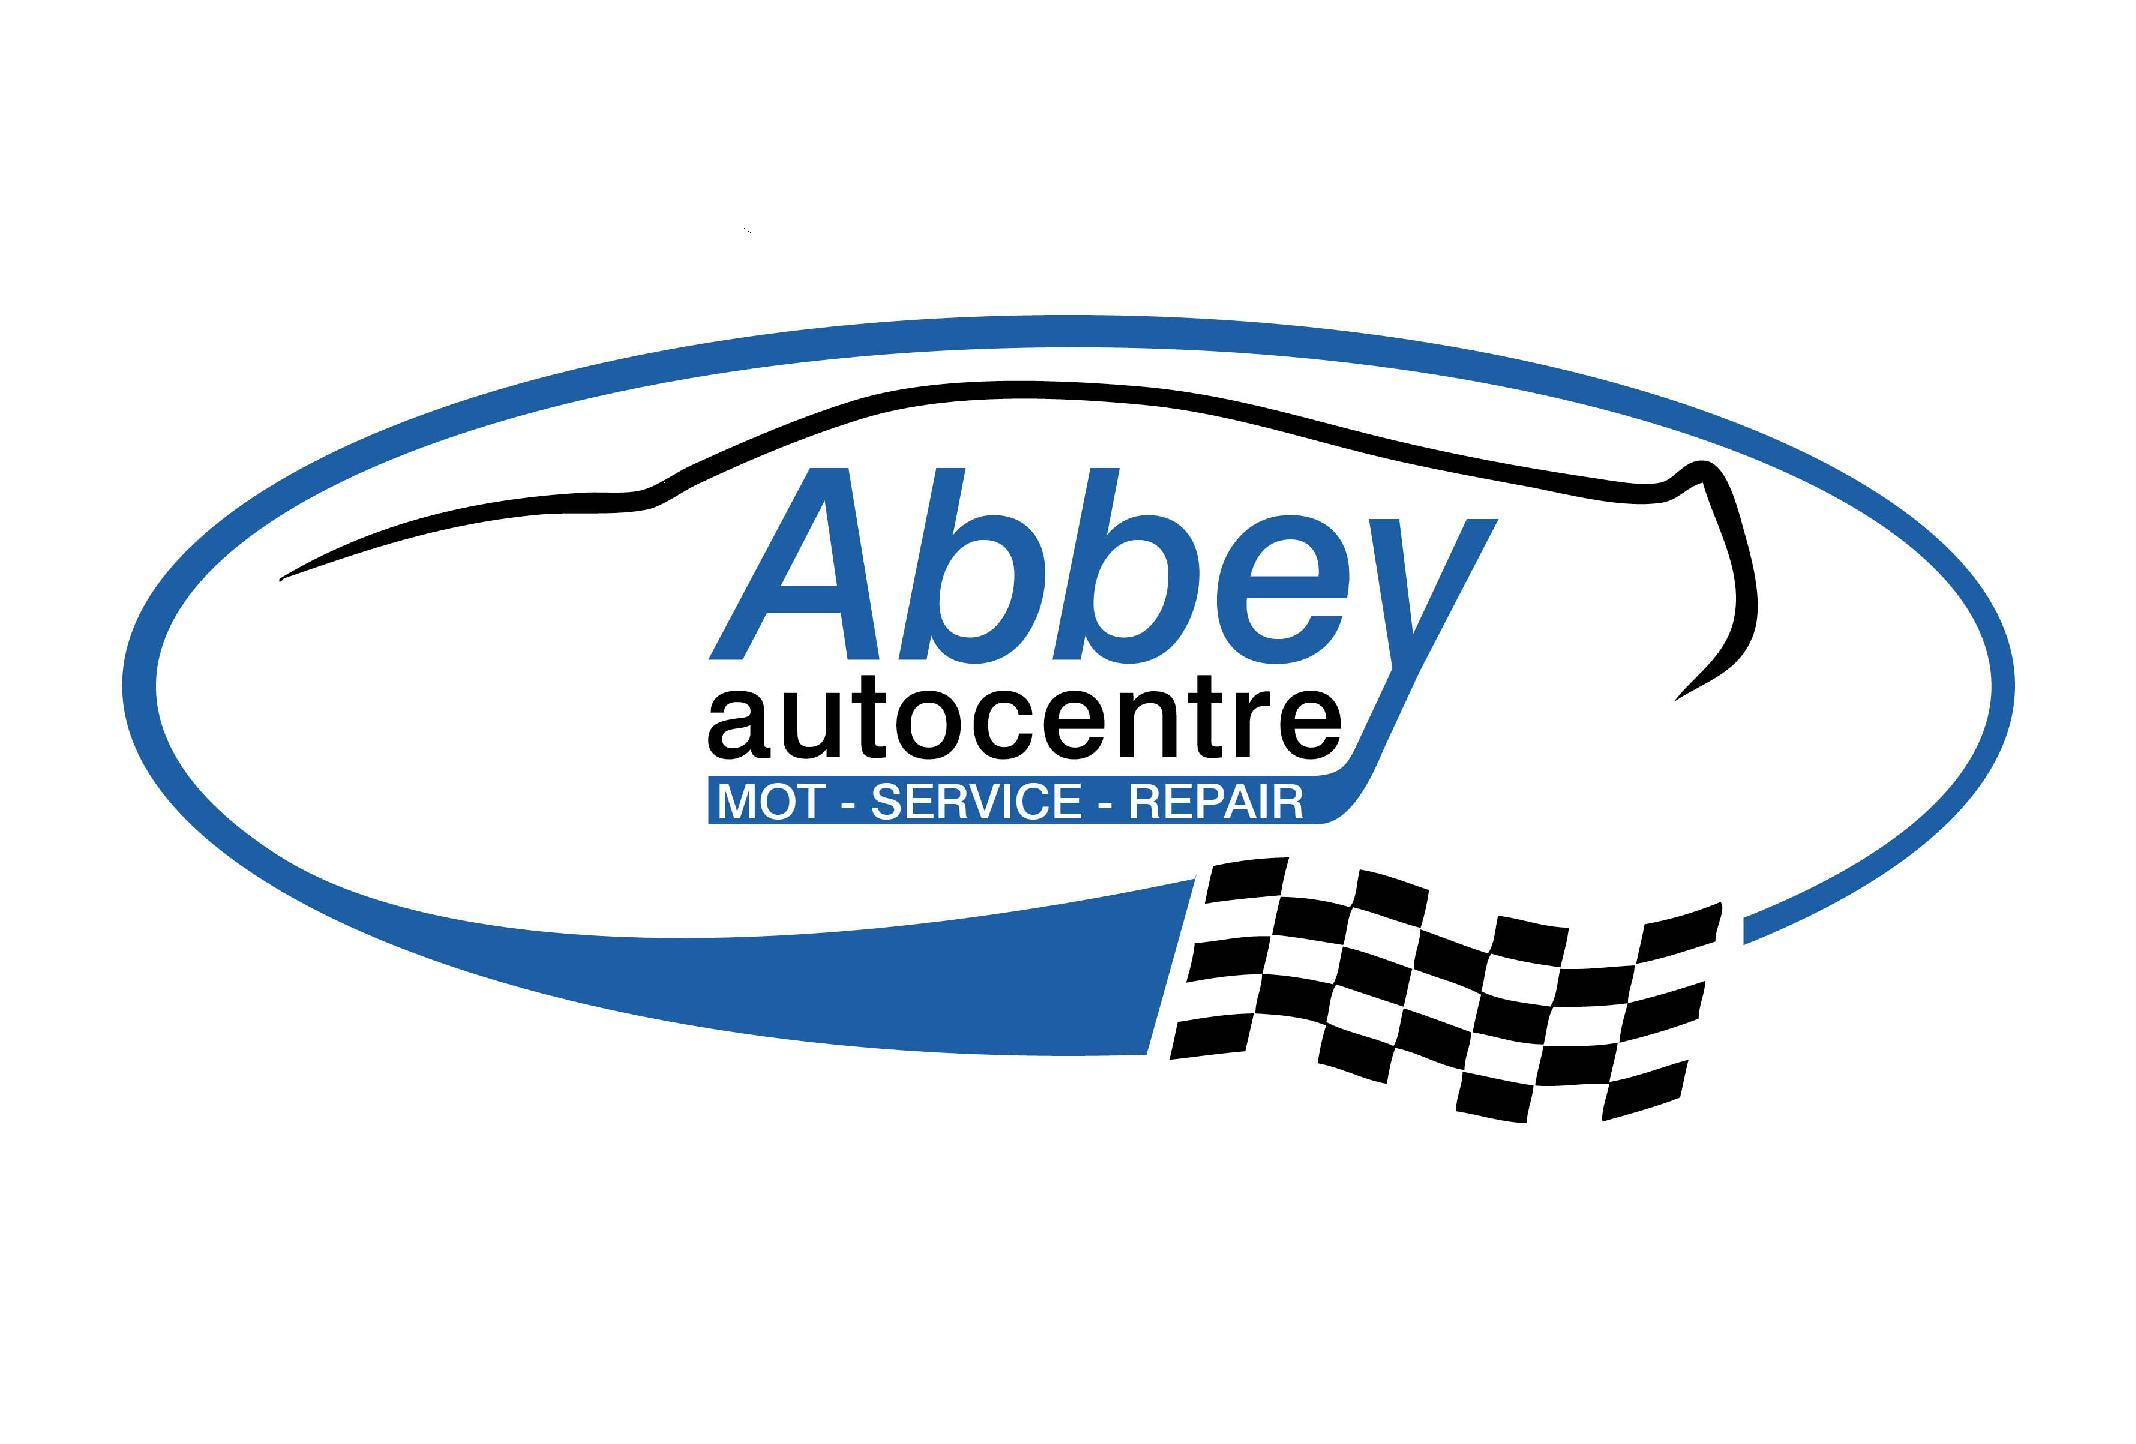 Abbey Autocentre Ltd